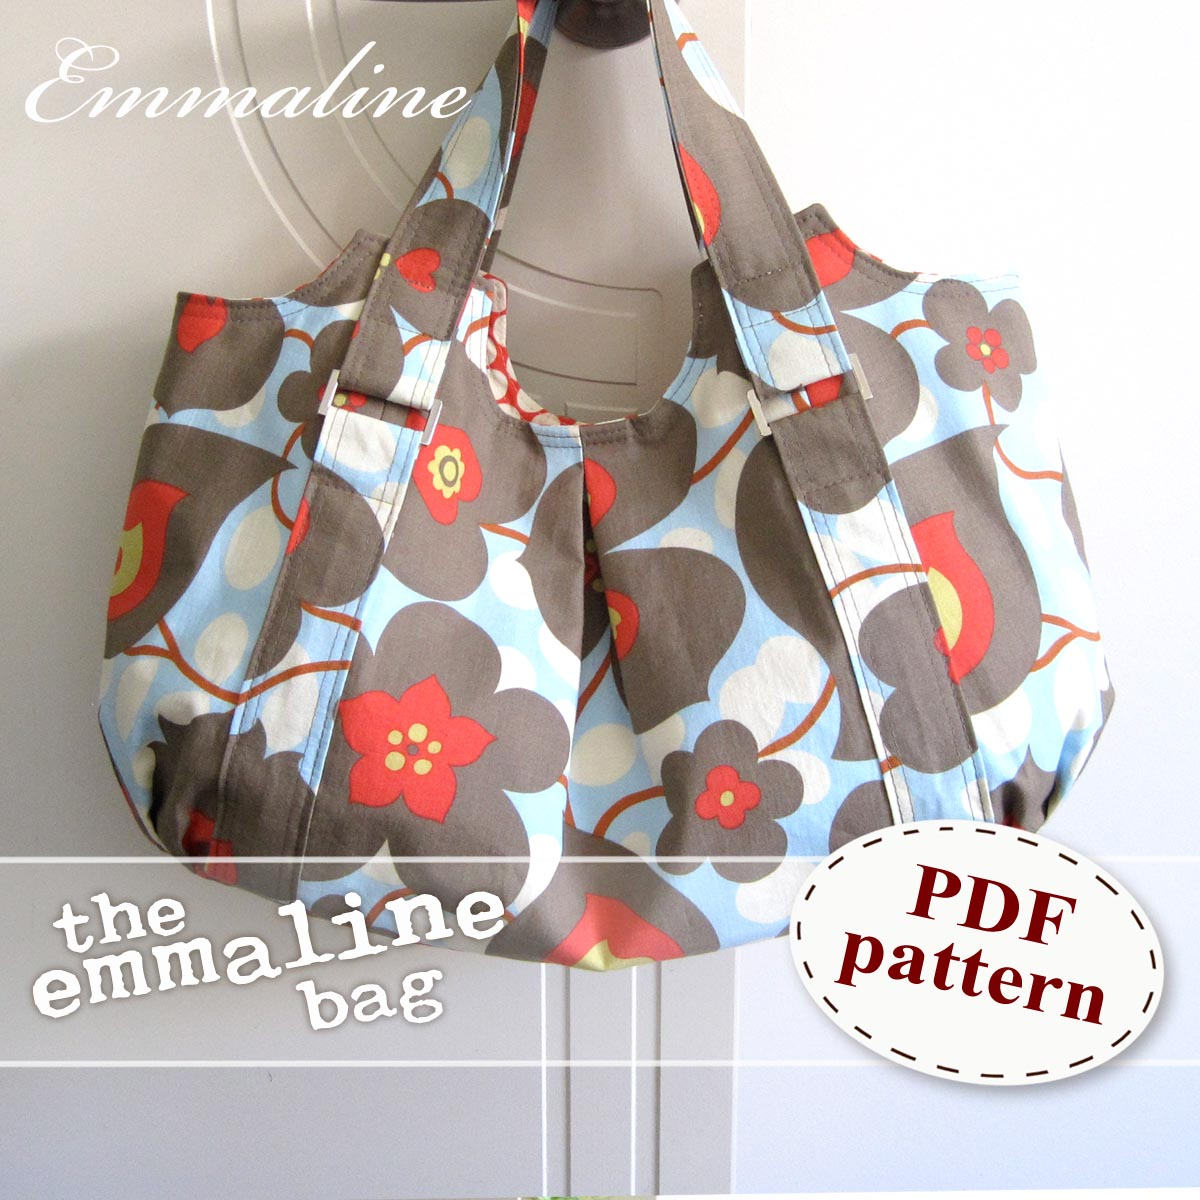 Pursepatterns : the+Emmaline+Bag+handbag+pattern.jpg